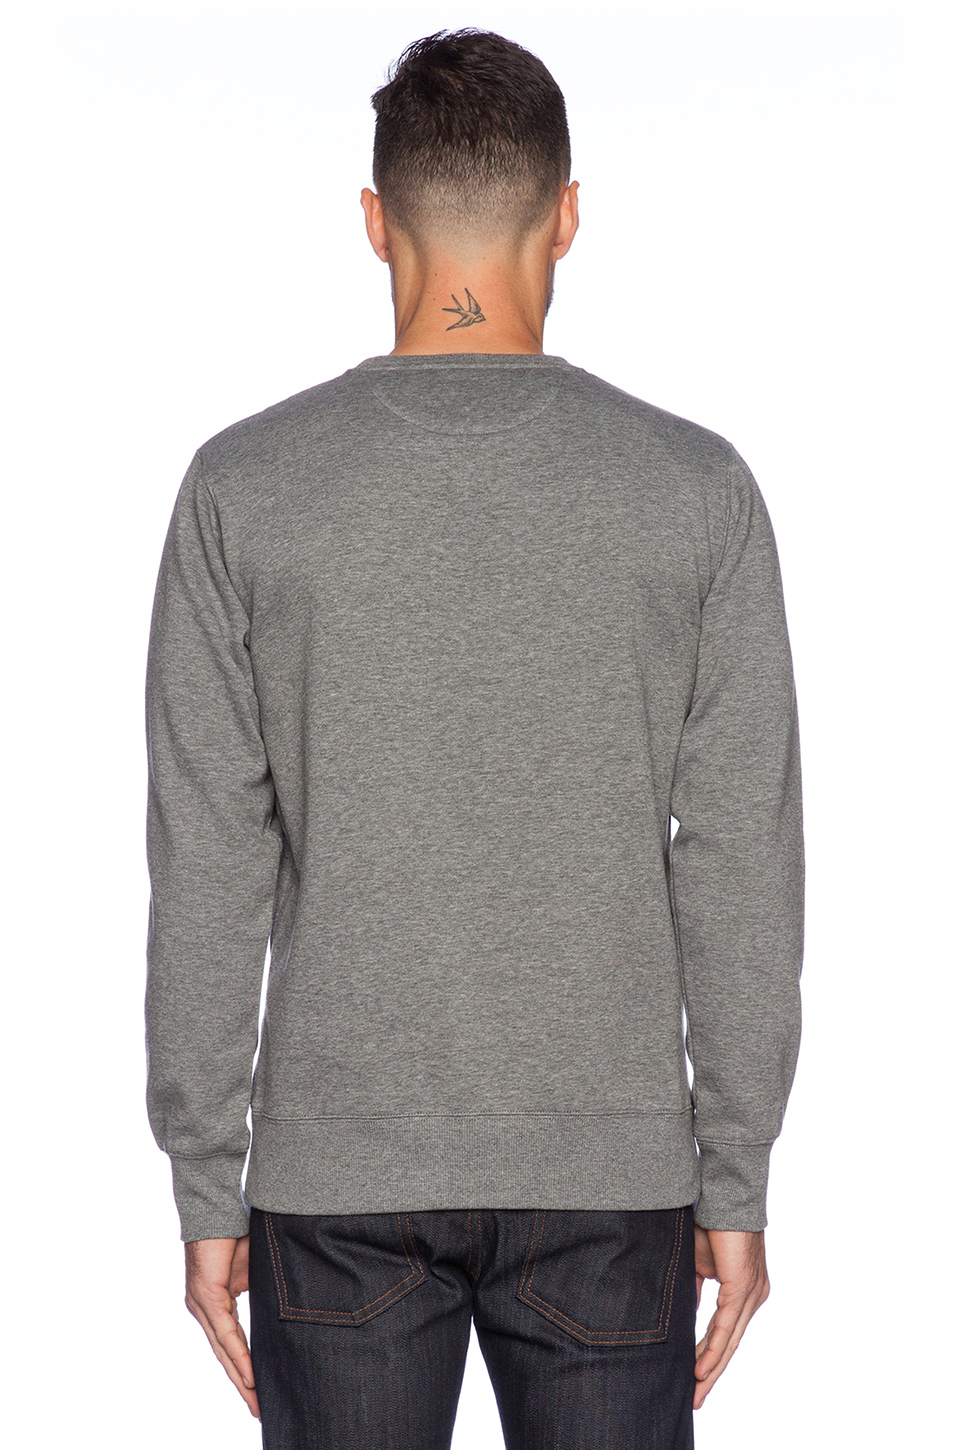 brookport men Buy penfield men's gray brookport crew sweatshirt, starting at £40 similar products also available sale now on.